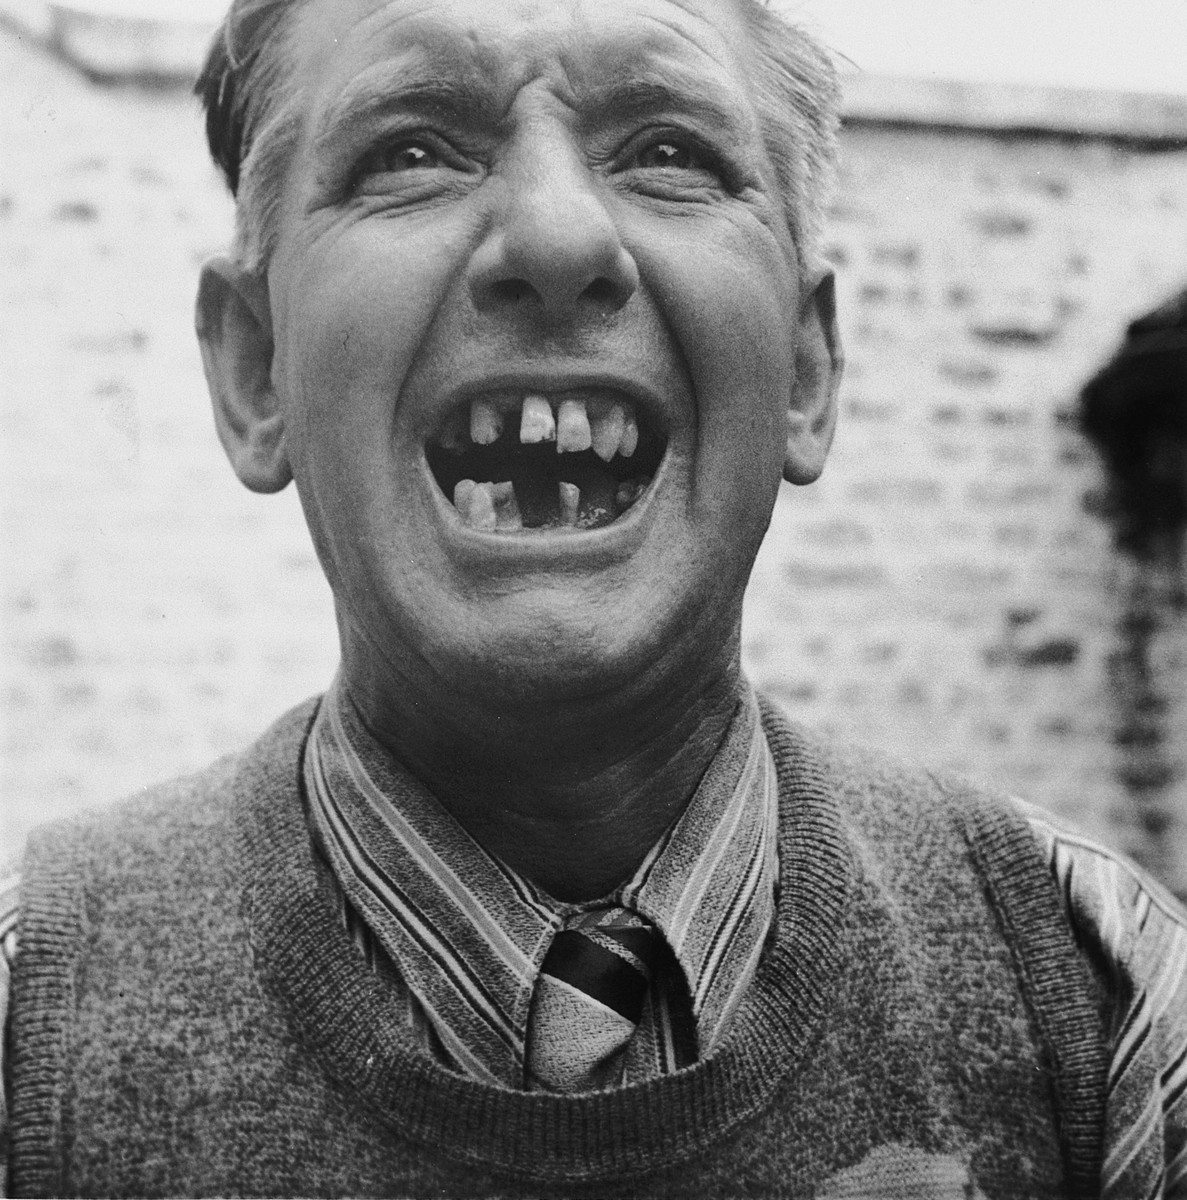 Mr. Emile Scieur displays his missing teeth as a result of torture received during his seventeen month imprisonment in the Breendonck internment camp.